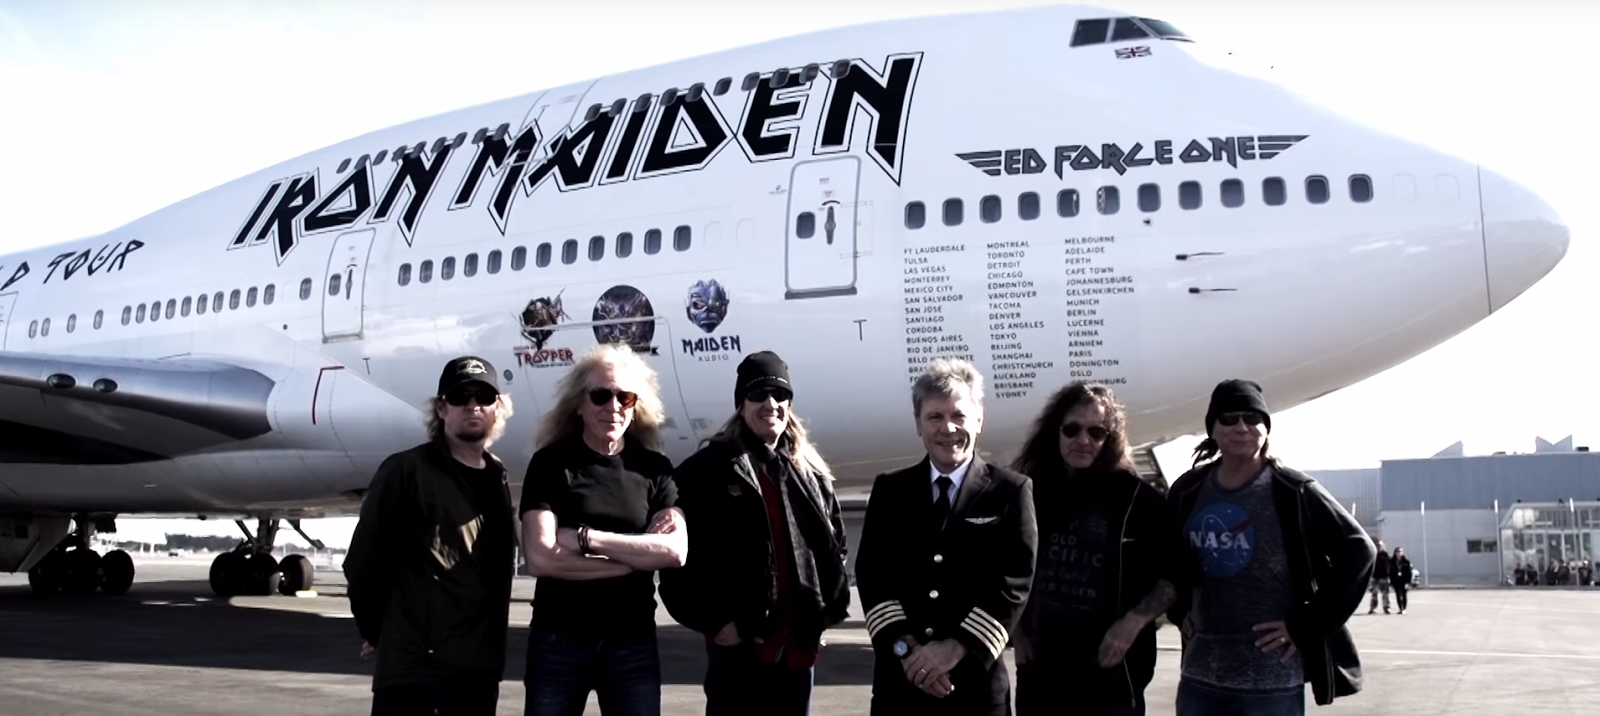 ed force one: assista vídeo especial sobre o avião do iron maiden